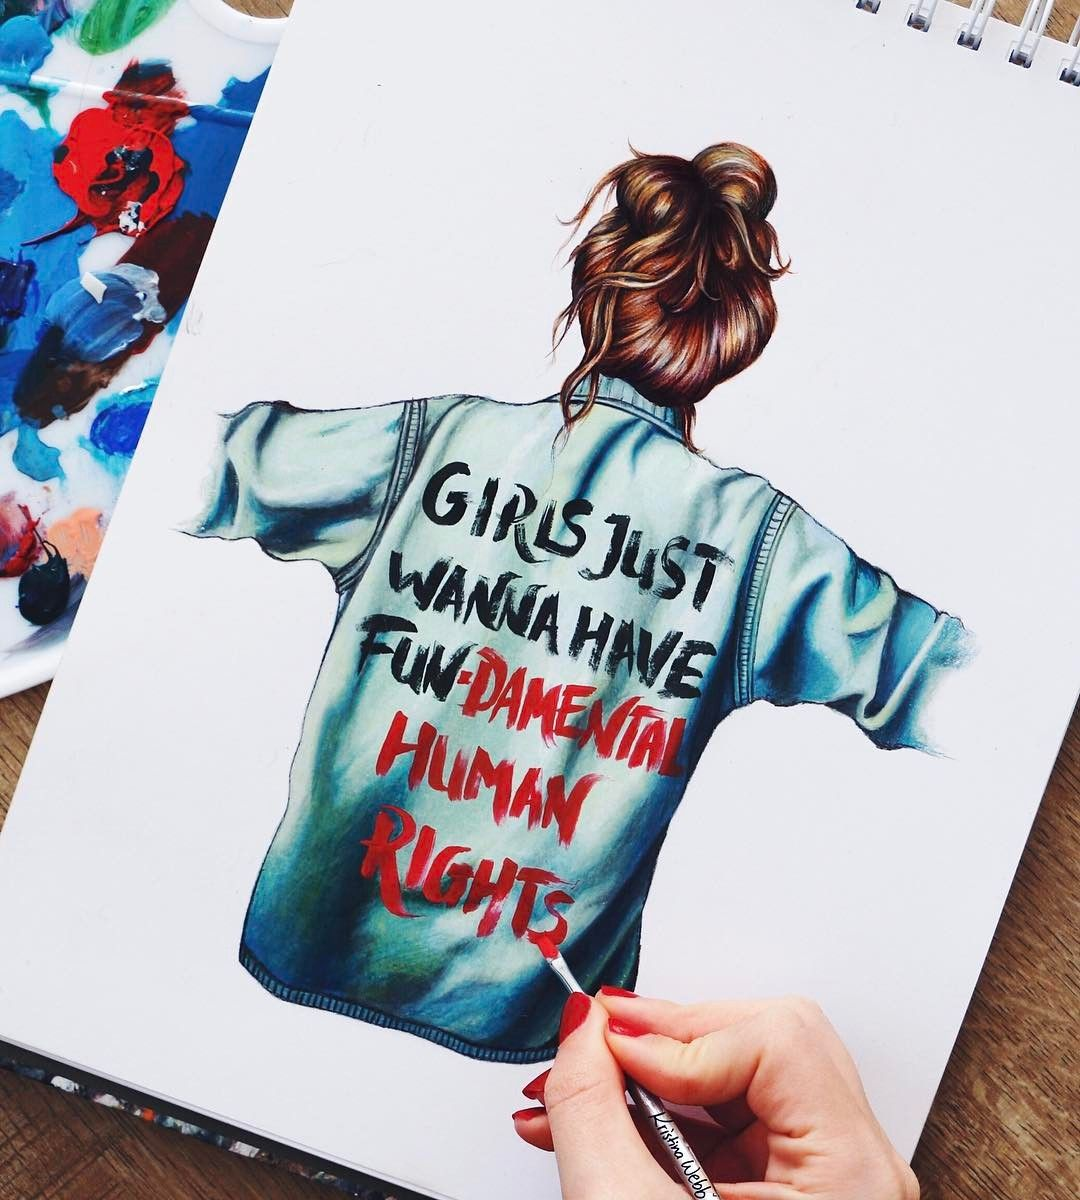 'Girls just wanna have fun-damental human rights' This drawing is pretty self explanatory and for all women worldwide. Feel free to repost this